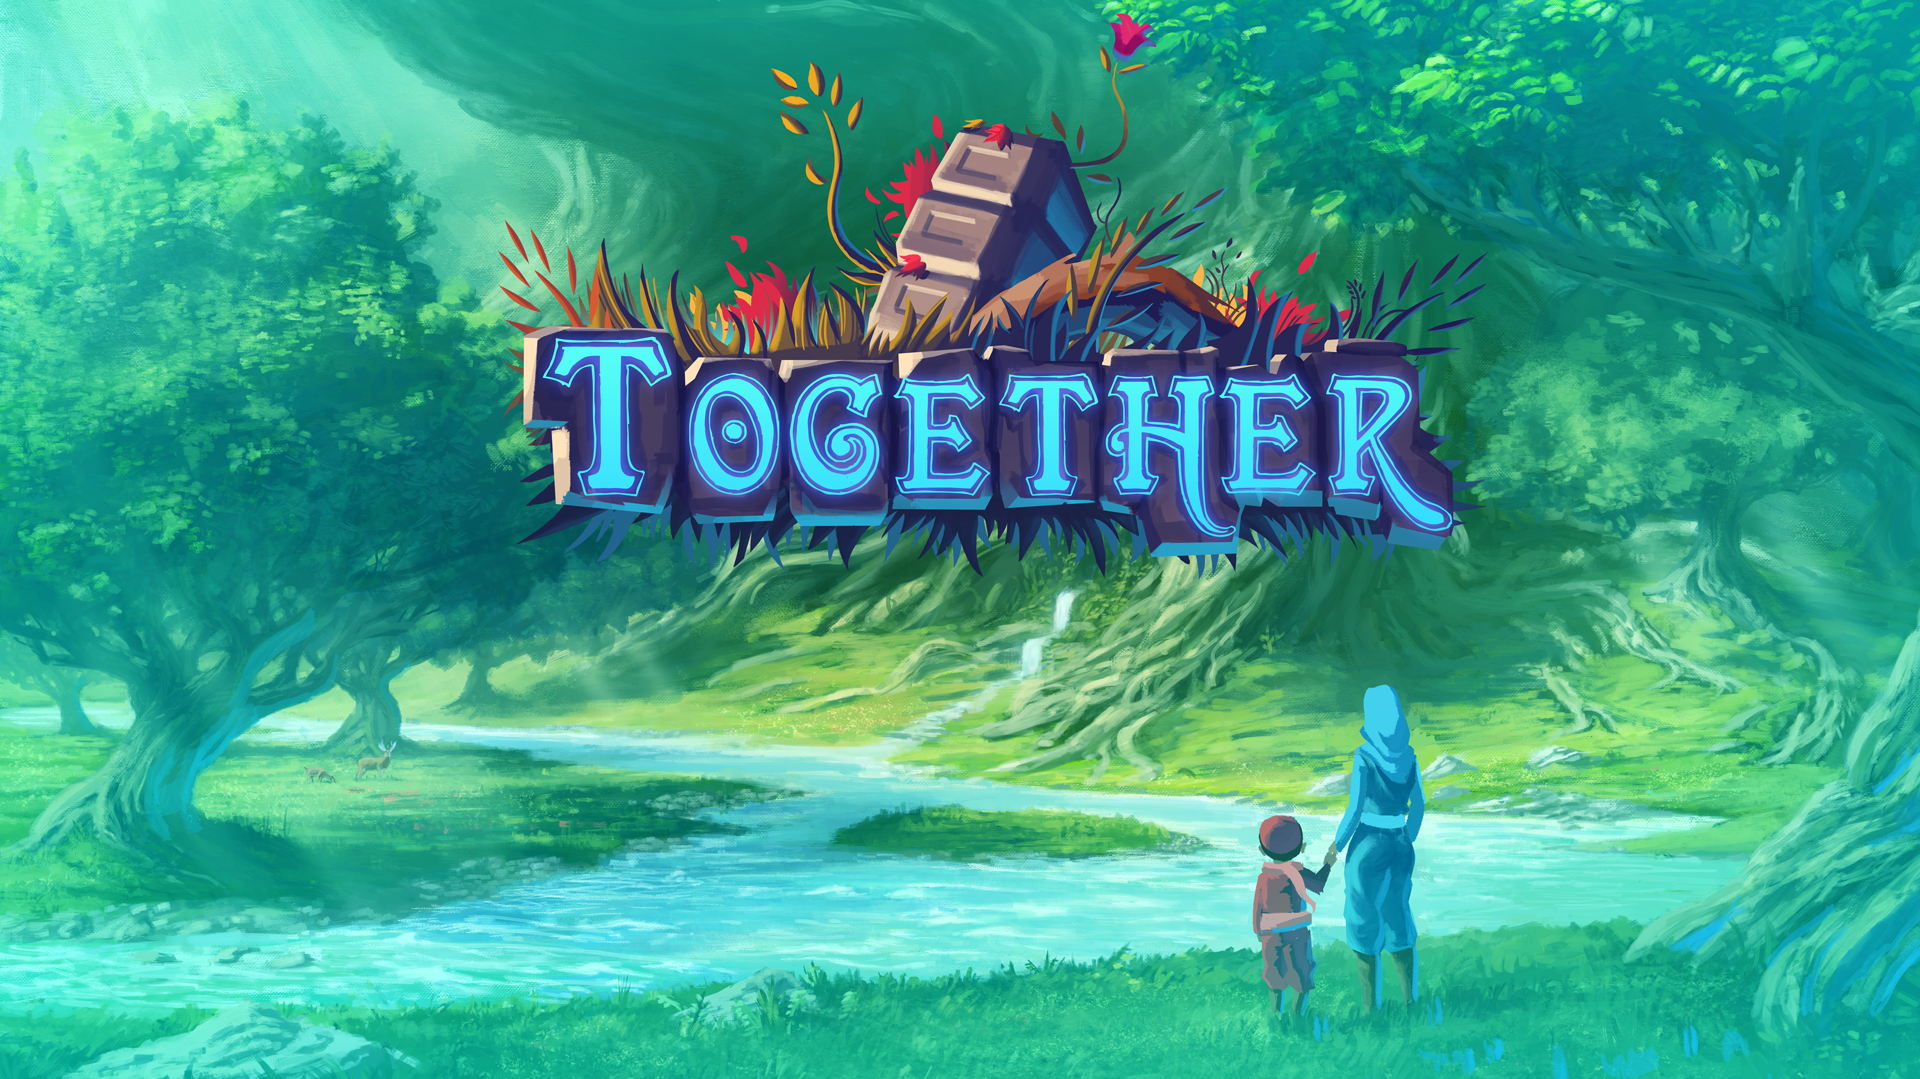 """Together: Amna & Saif"" Kickstarter Campaign Successful - Indie Co-Op Funded Just Short of First Stretch Goal"